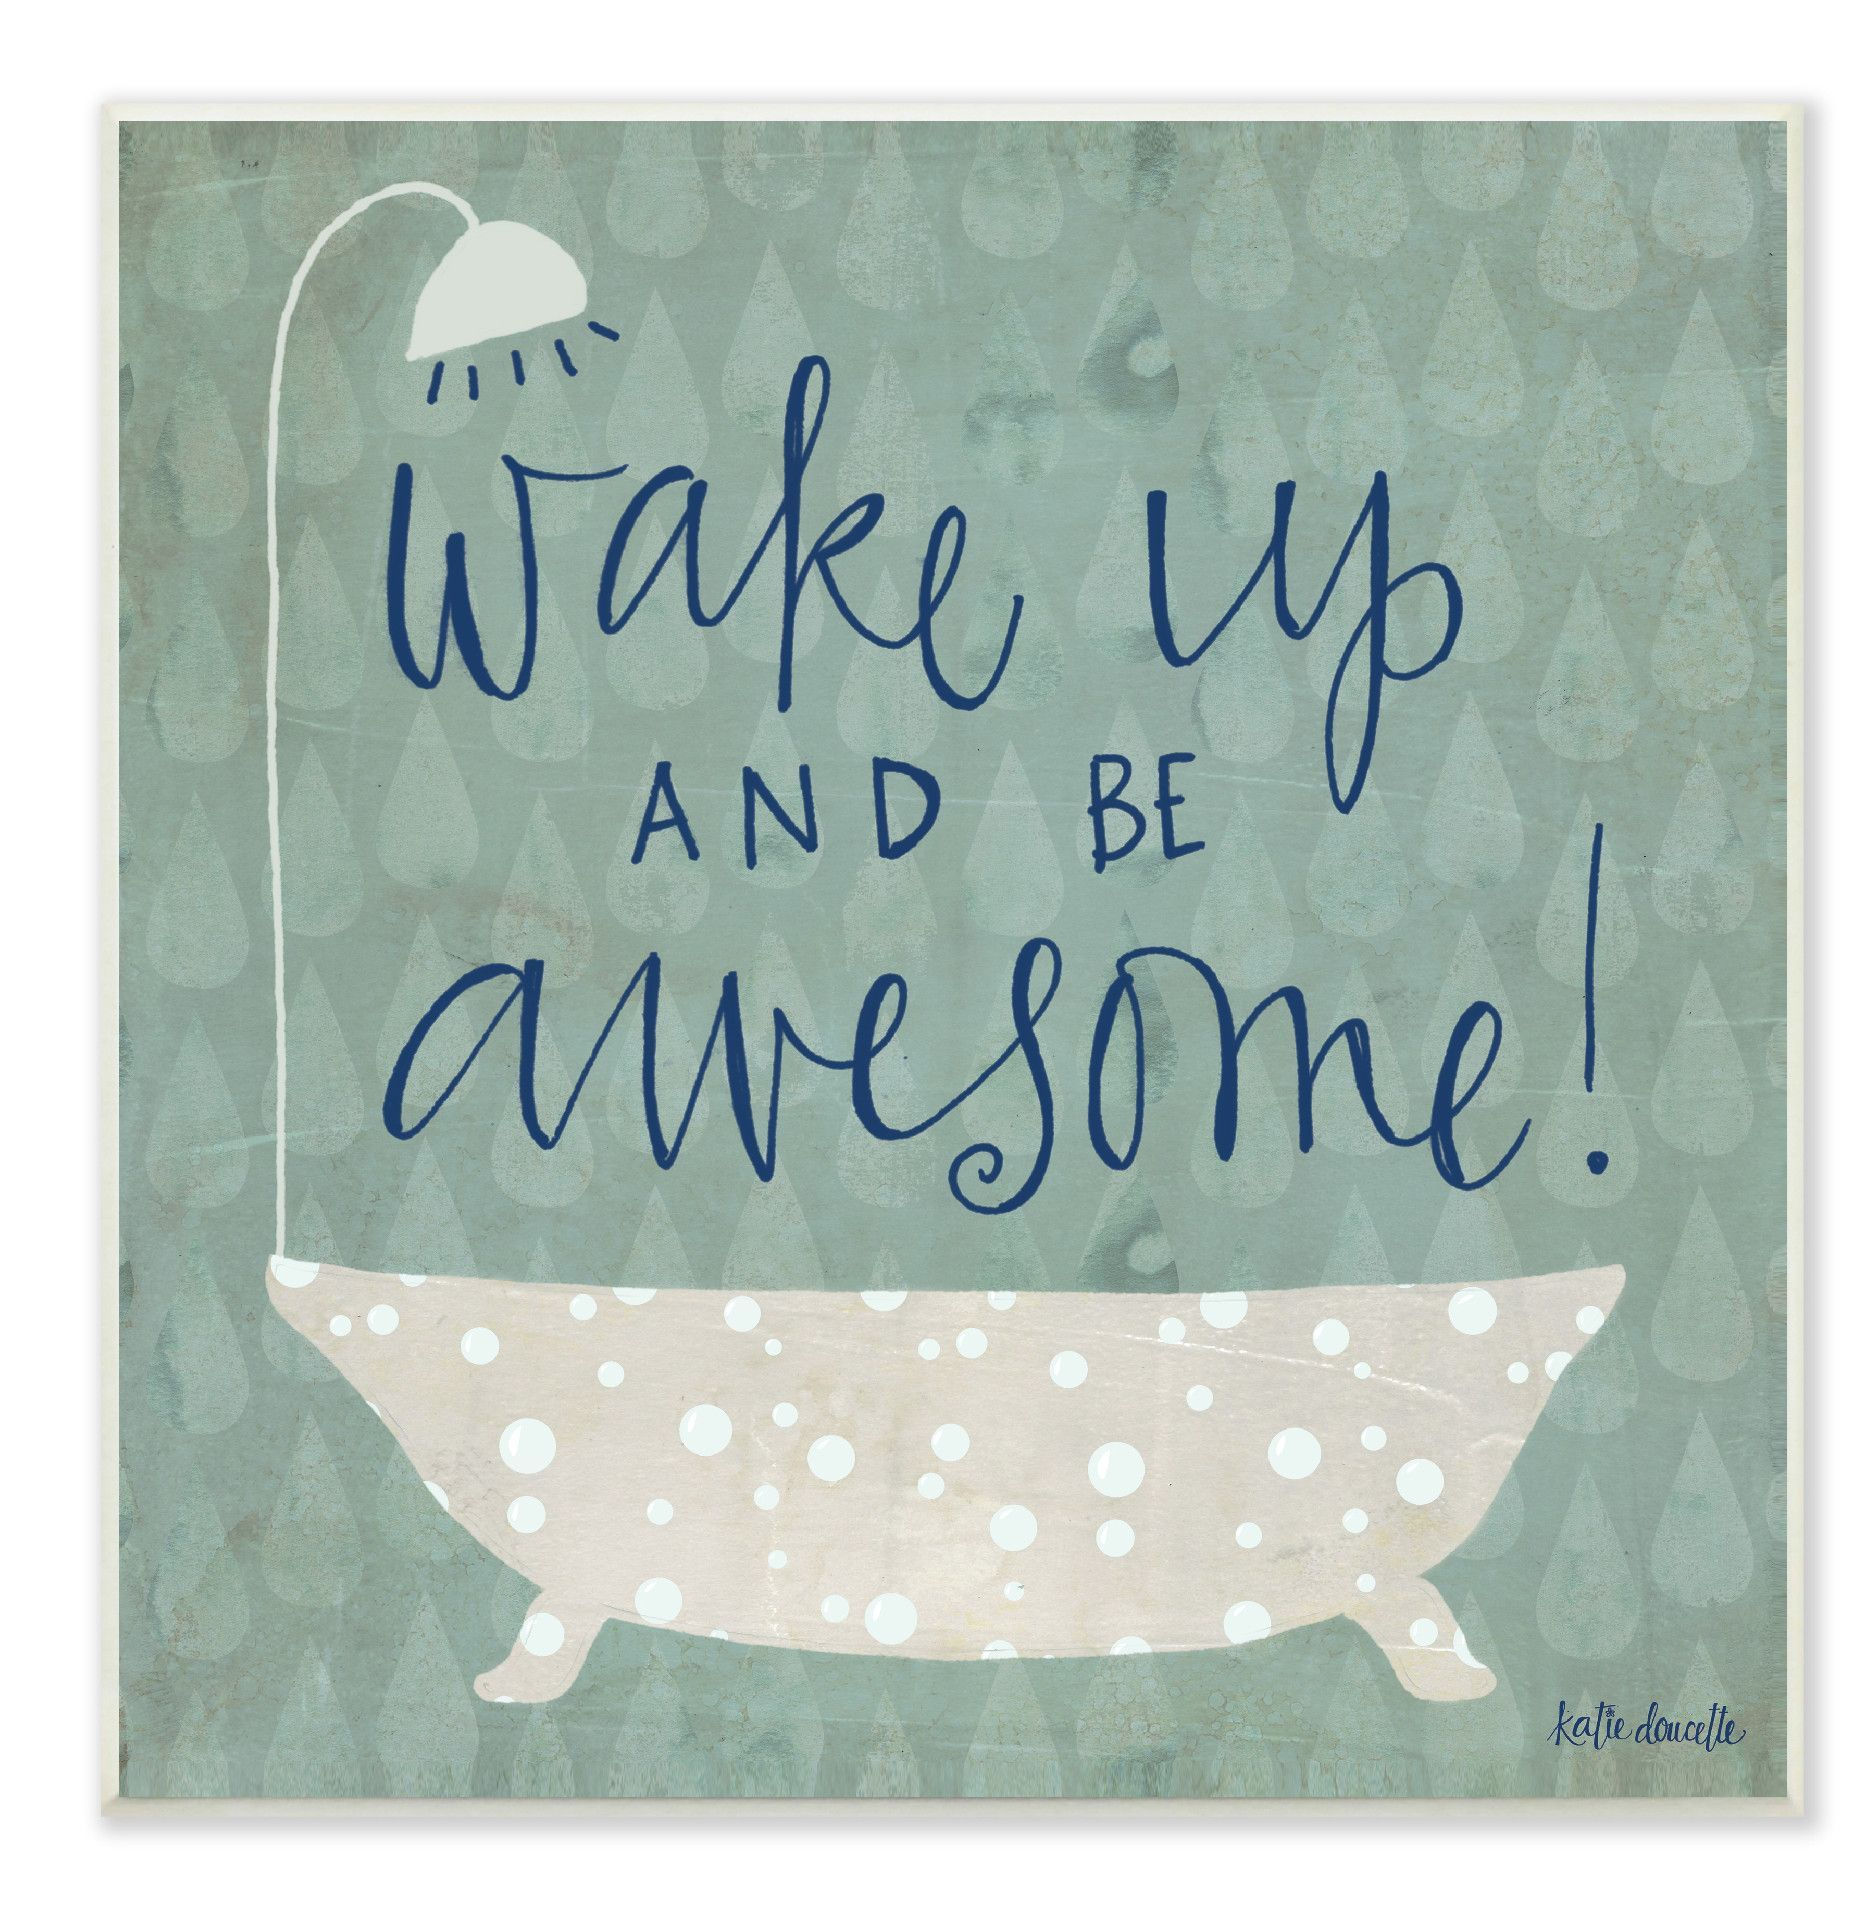 'Wake Up Be Awesome Tub Bath' by Katie Doucette Graphic Art Plaque